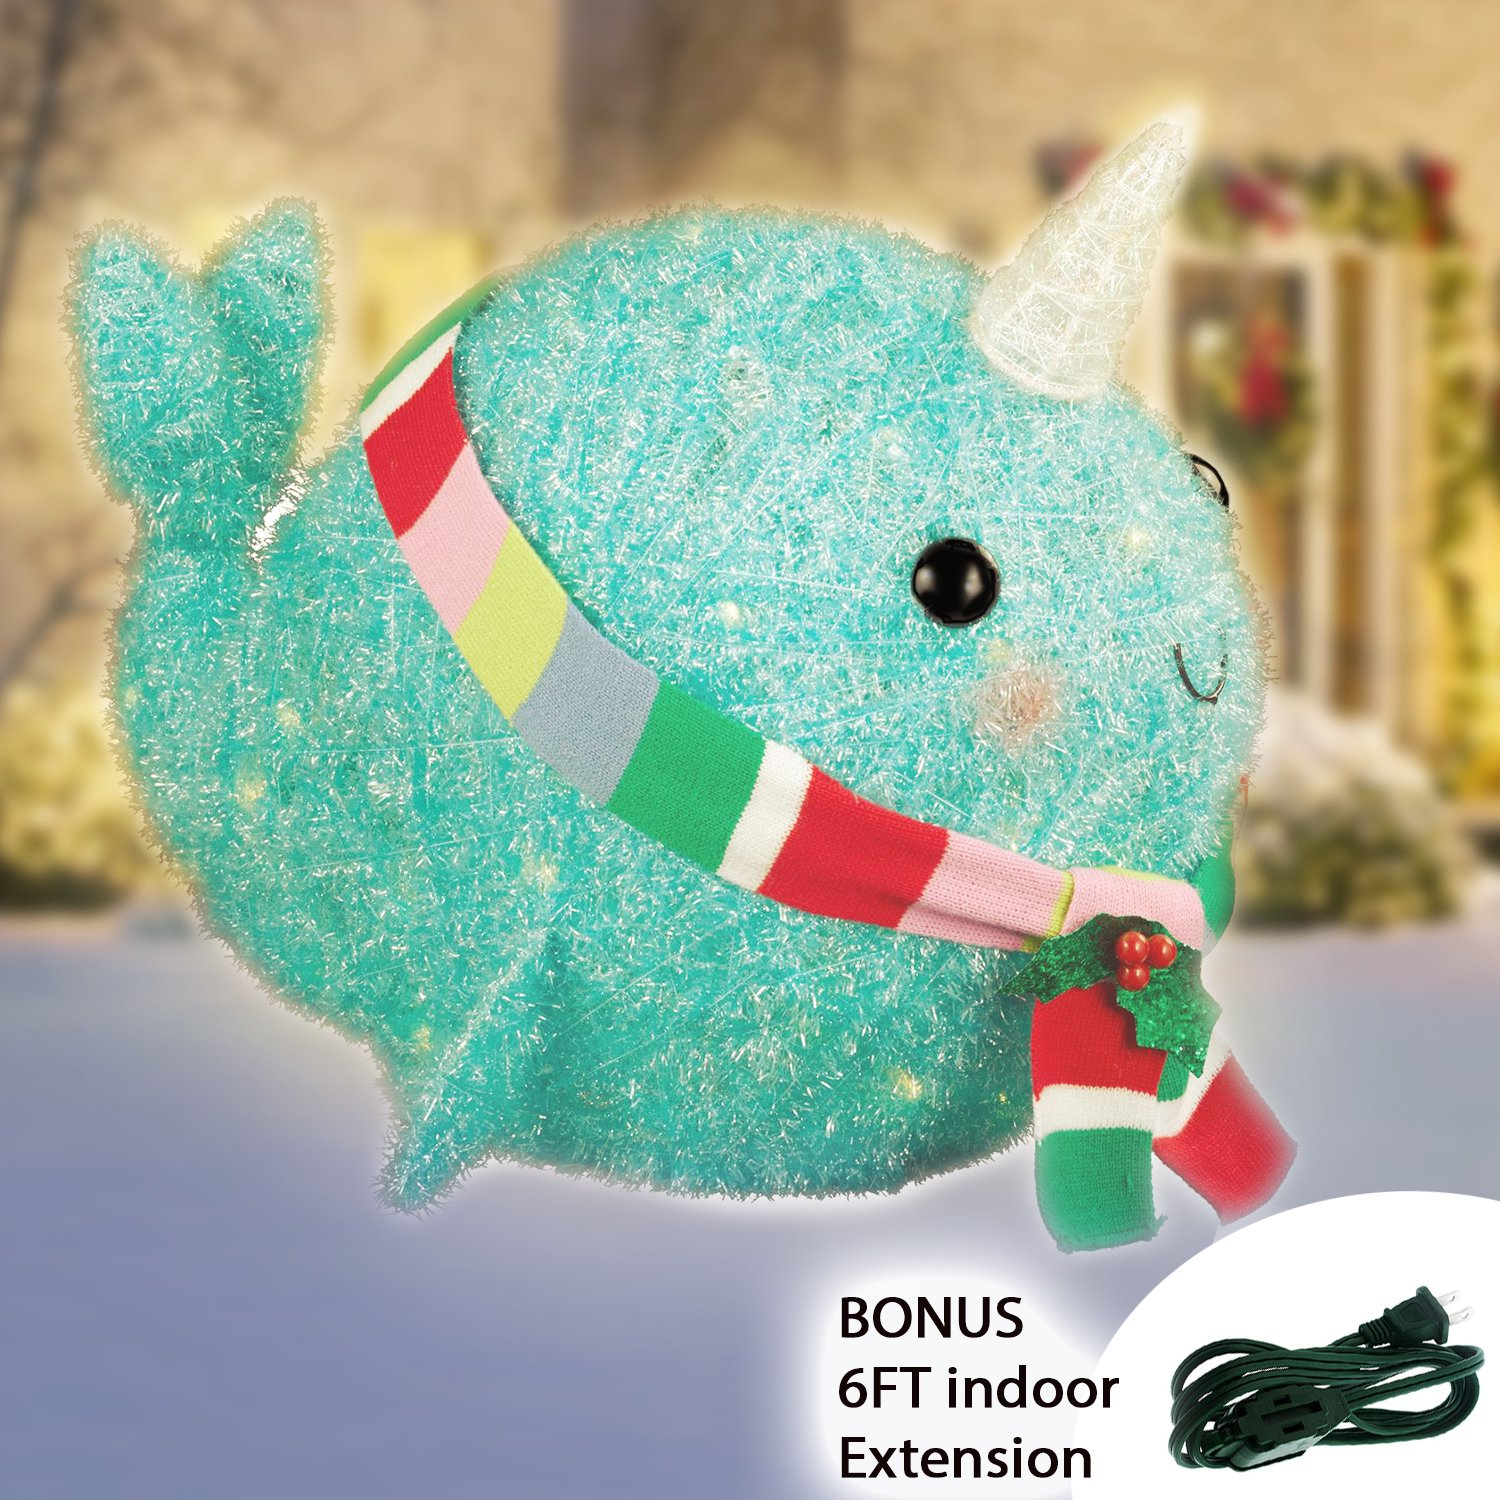 Christmas Narwhal Tinsel with Scarf - Lighted with 50 Bulbs - 17.25'' tall Outdoor Yard Decoration Statue + Greenbrier 6 FT Indoor Extension Cord Bundle